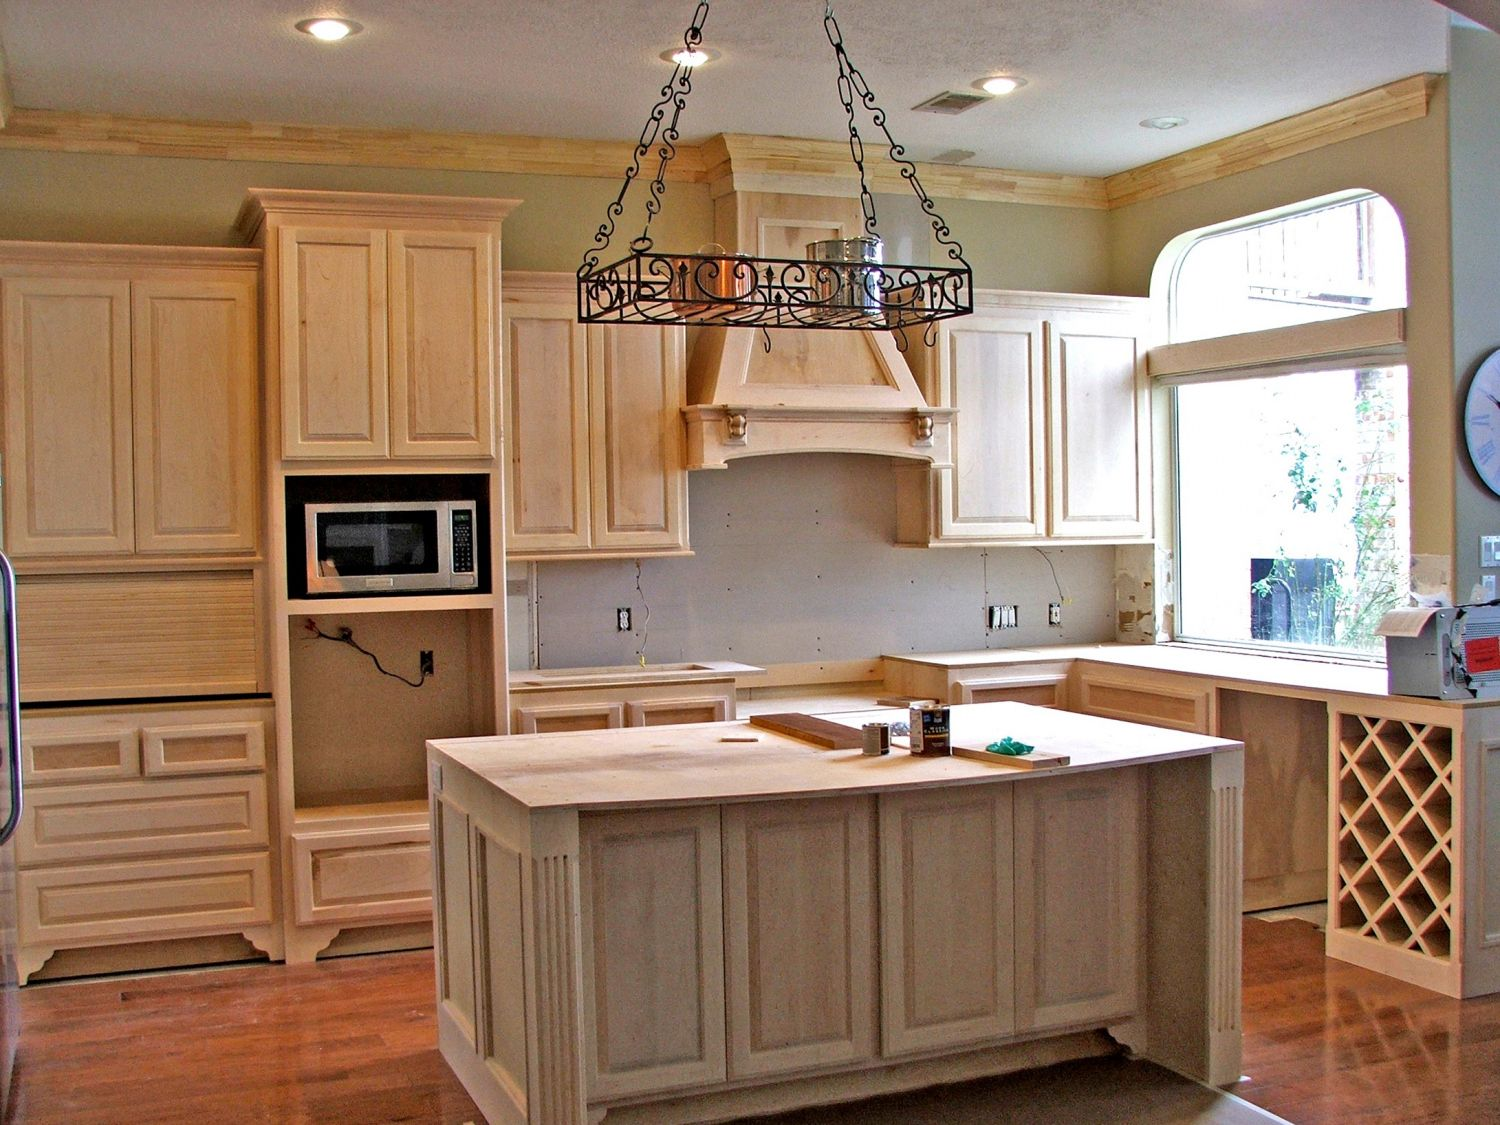 Kitchen Paint Colors With Beige Cabinets Kitchen Track Lighting Ideas Check More At Http Www Entropiads Maple Kitchen Cabinets Maple Kitchen Kitchen Design